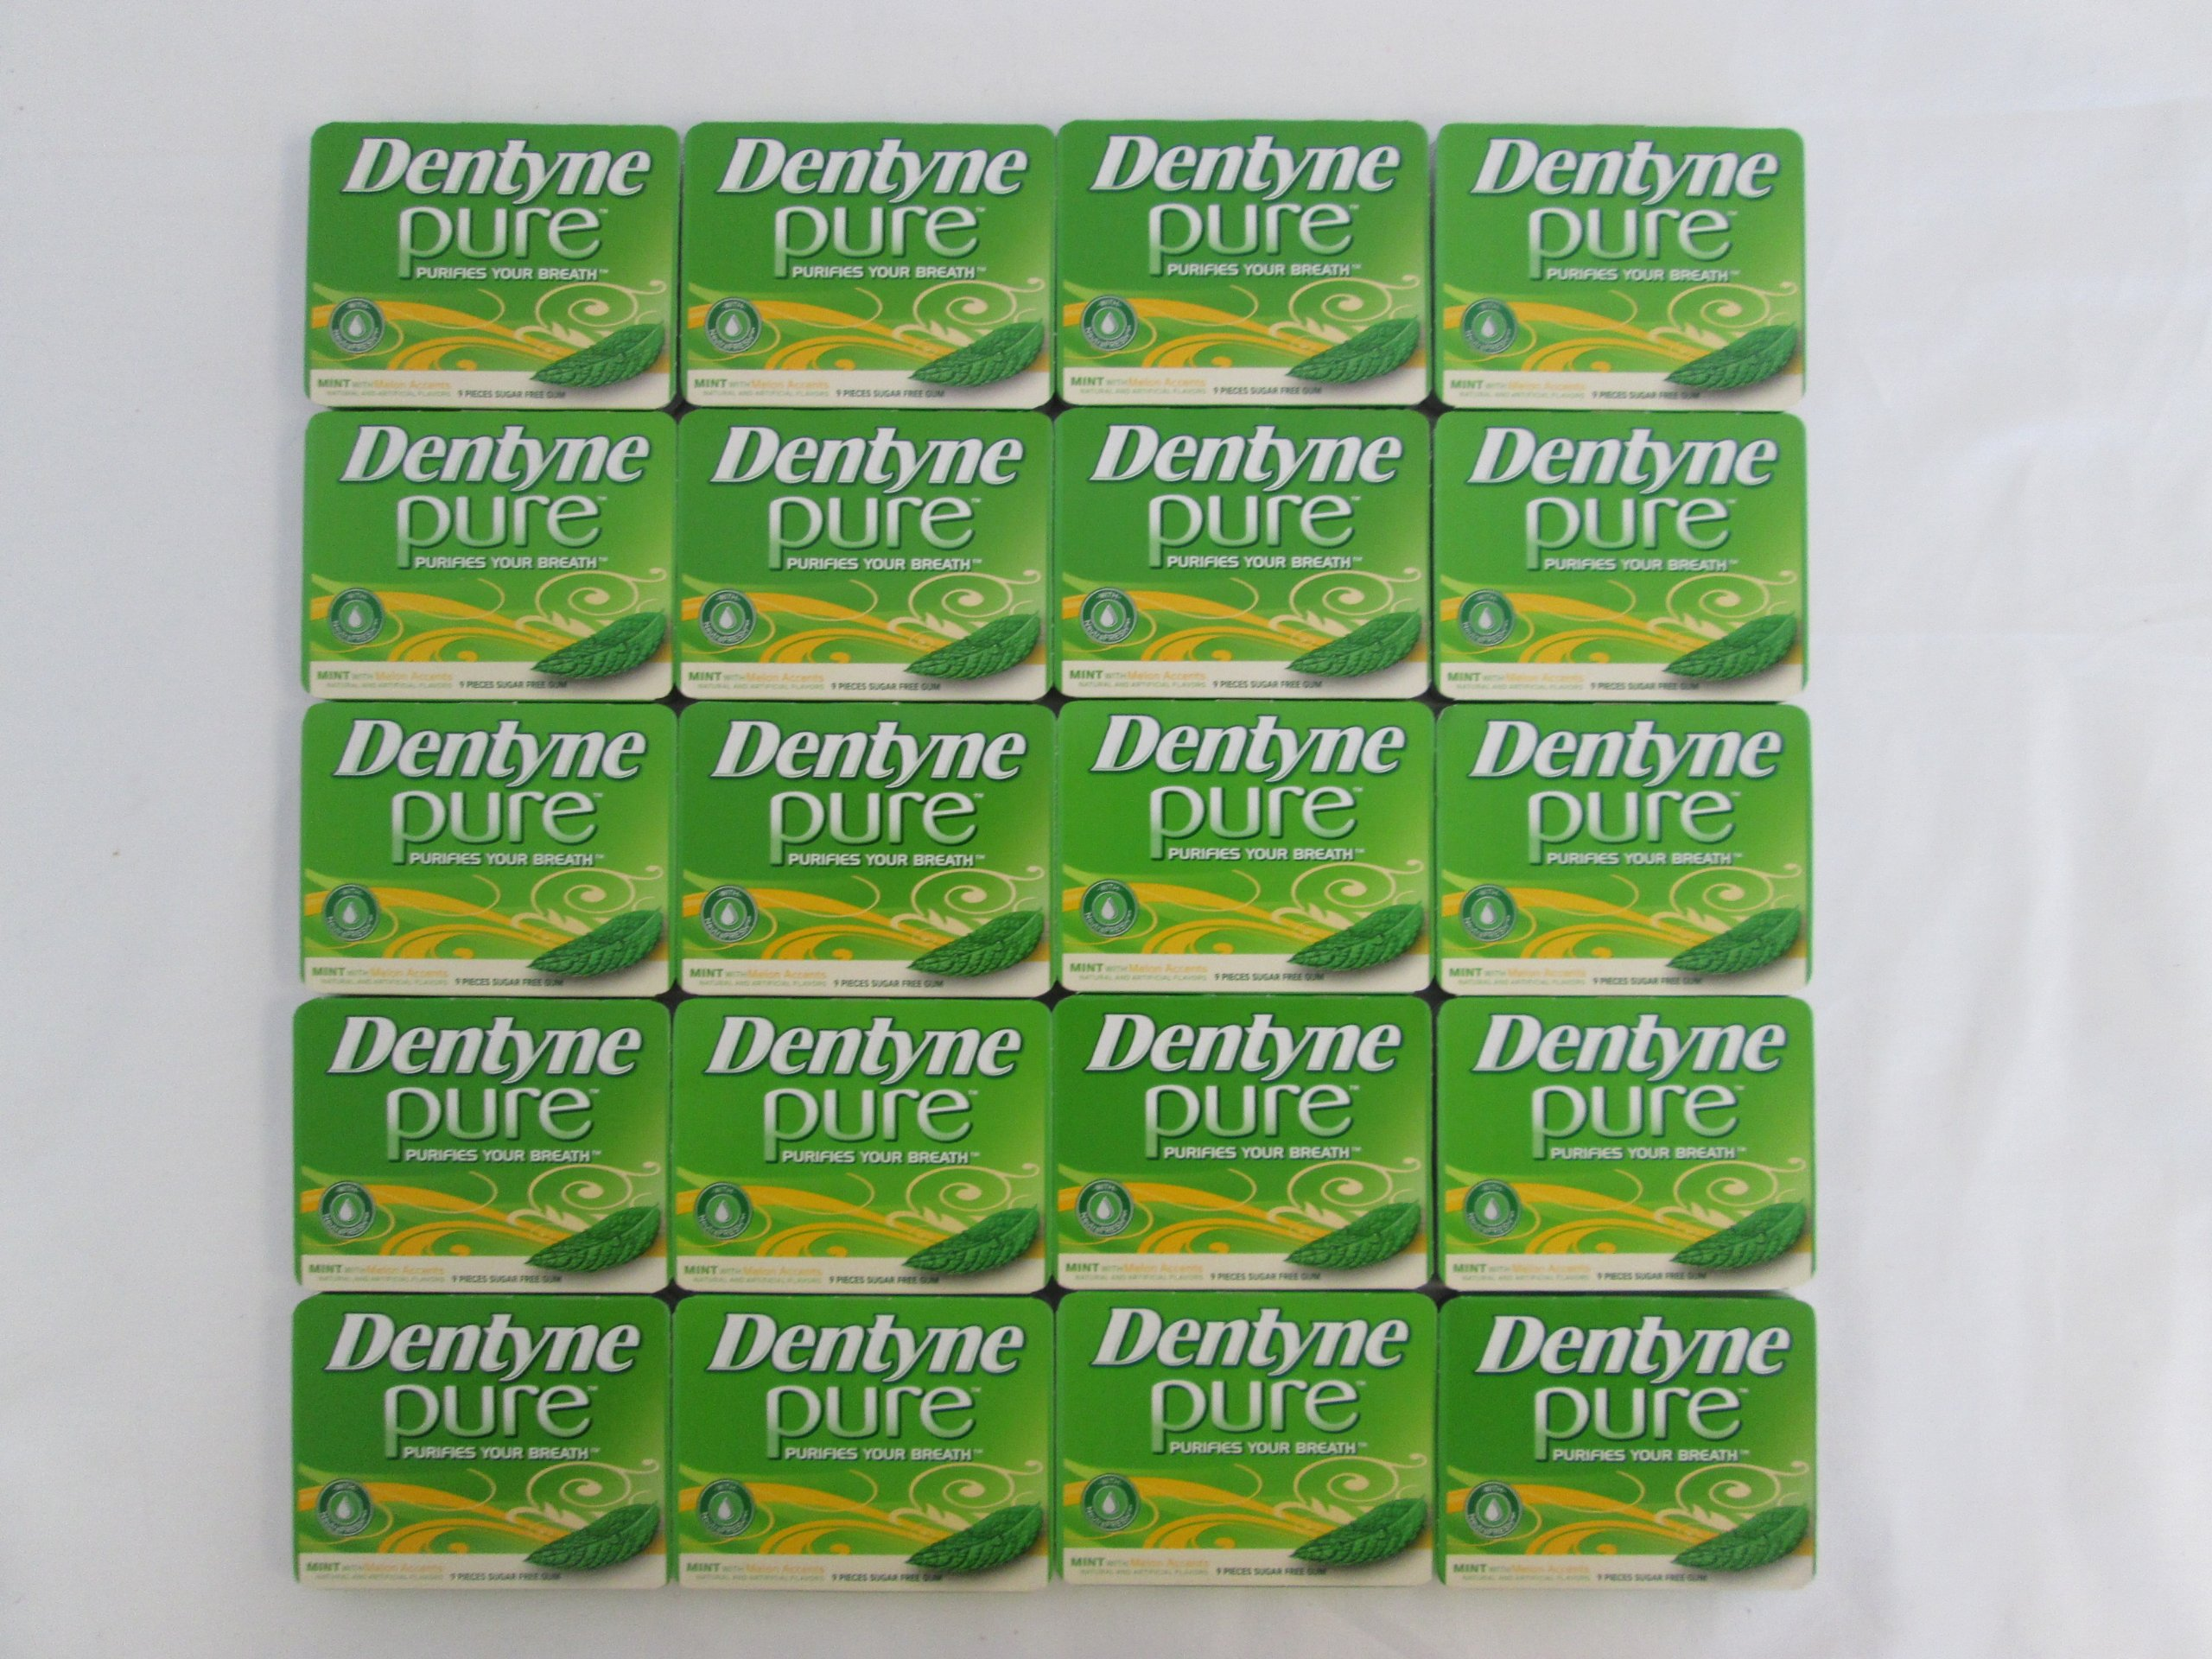 Dentyne Pure Mint with Melon Accents, Sugar-free Gum: 20 Pack of 9 Pieces